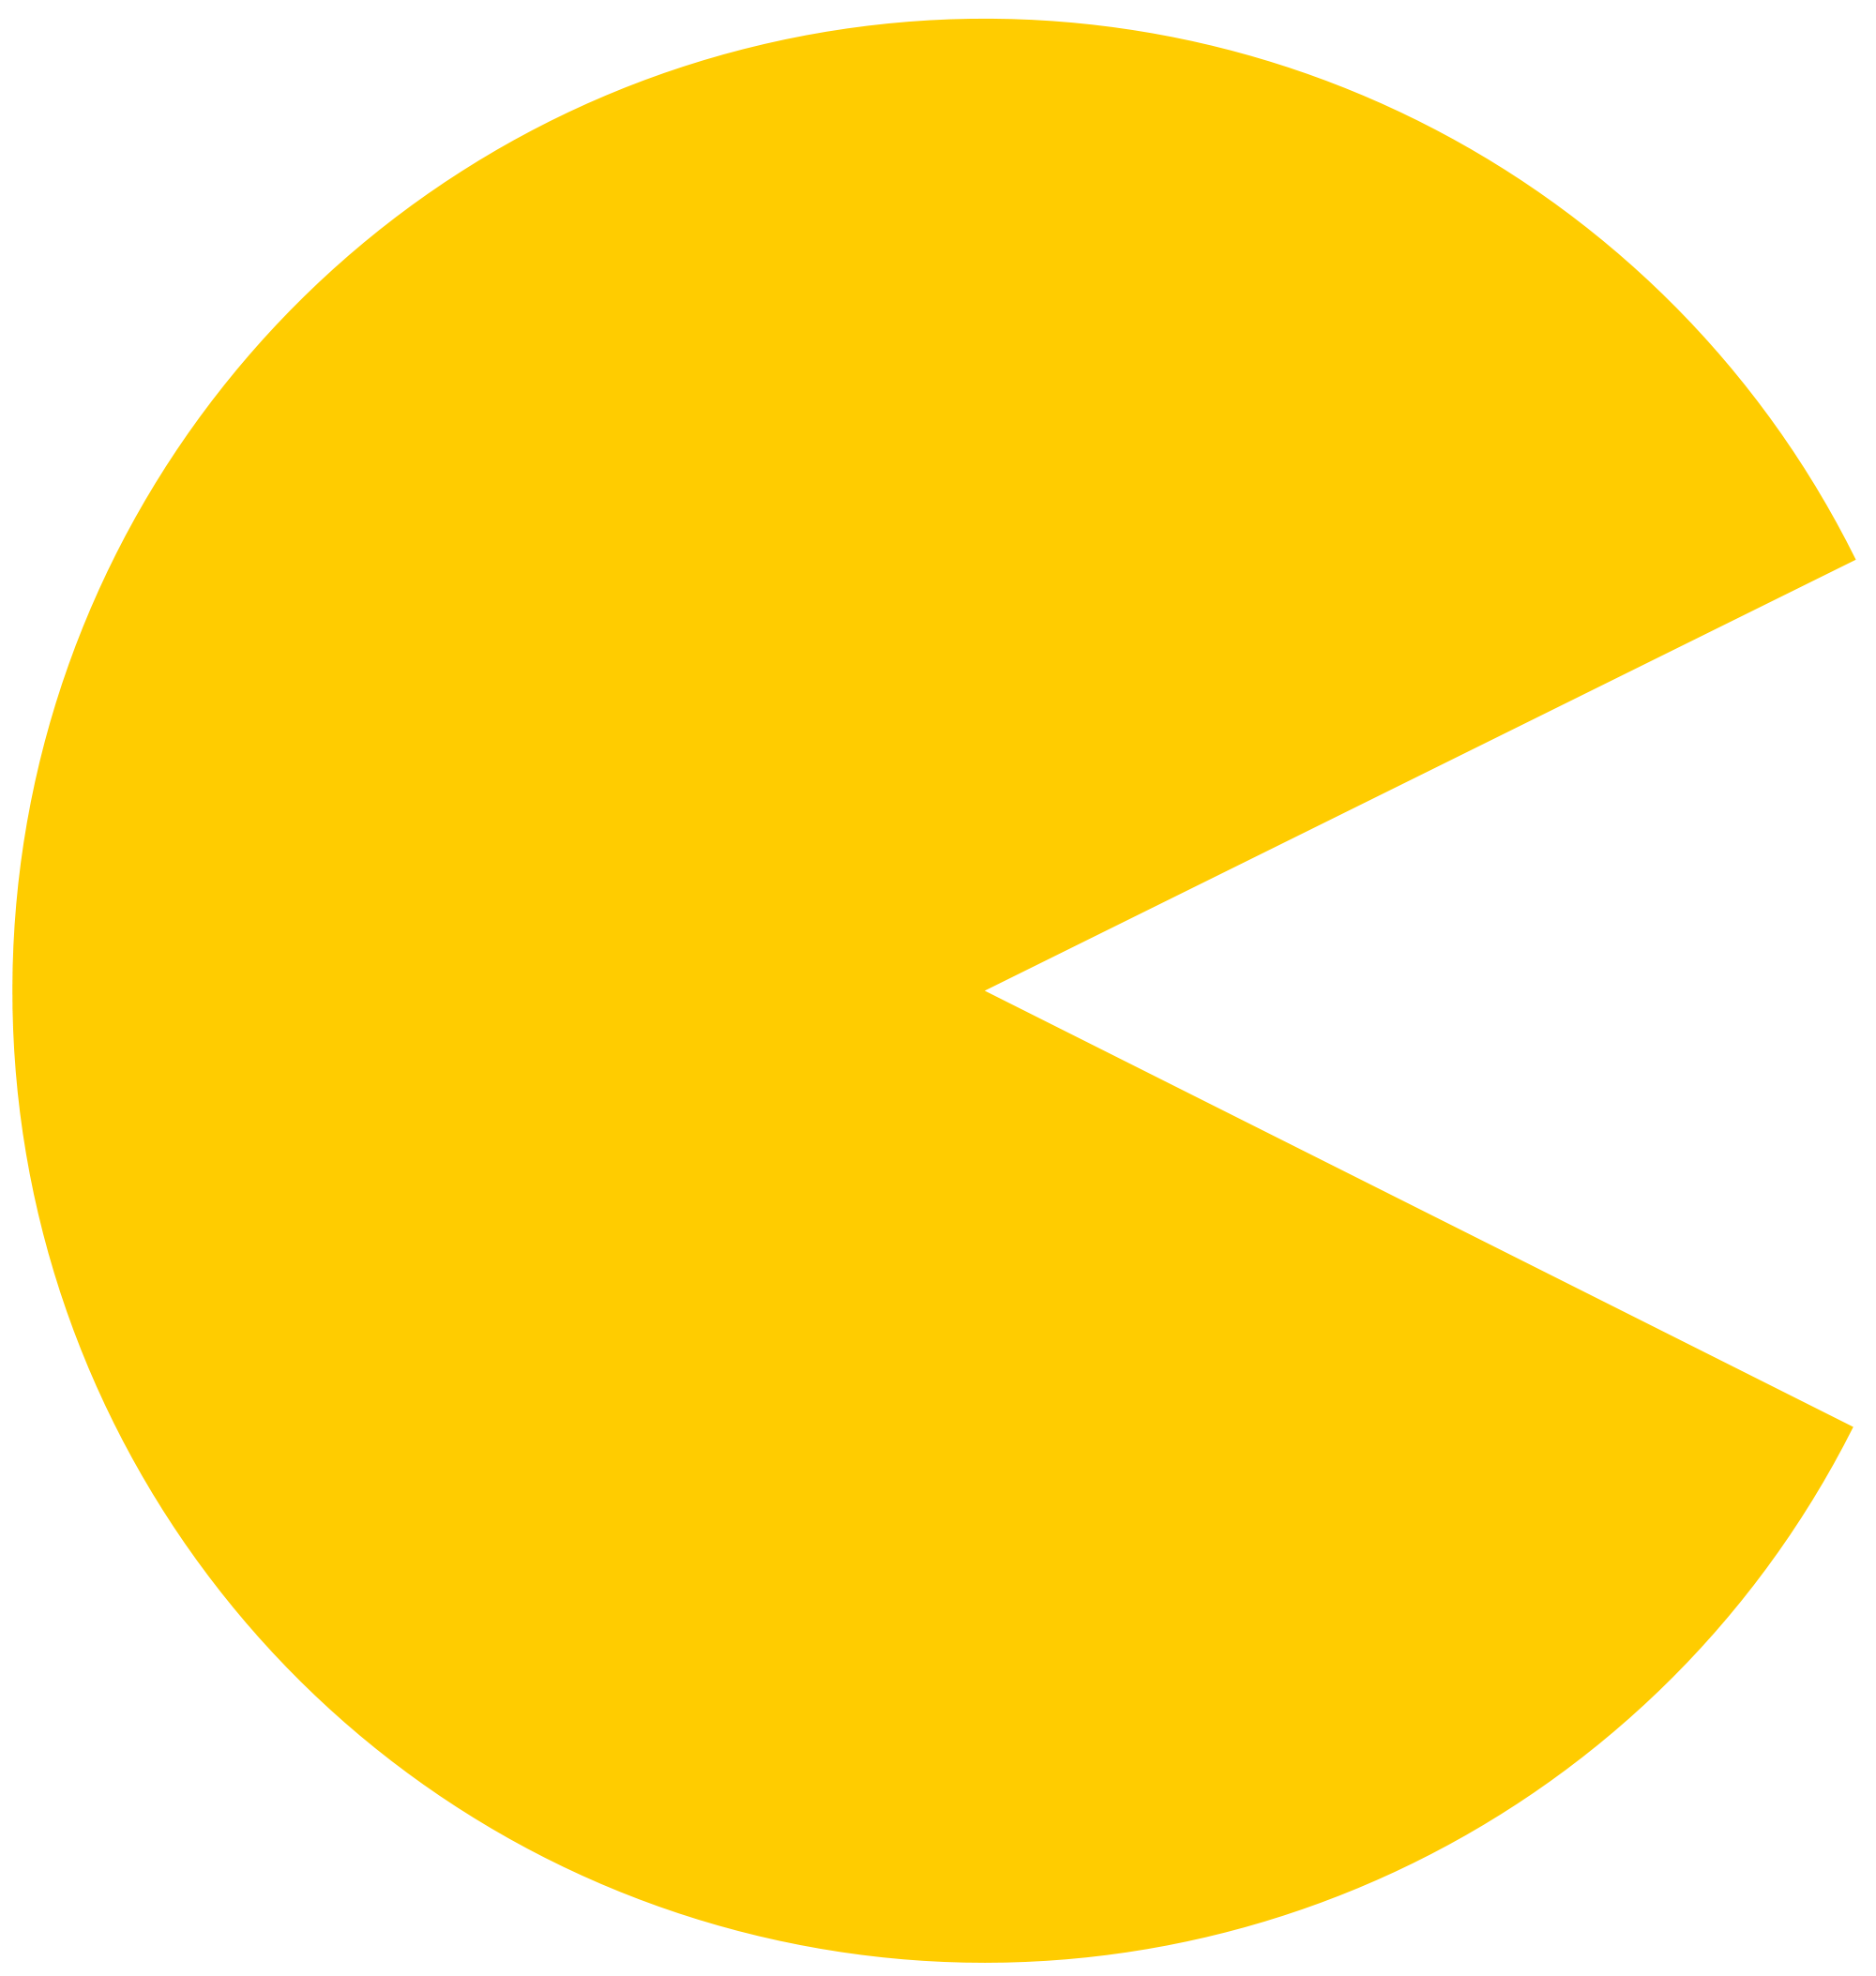 Moving clipart education. Image px pacman svg